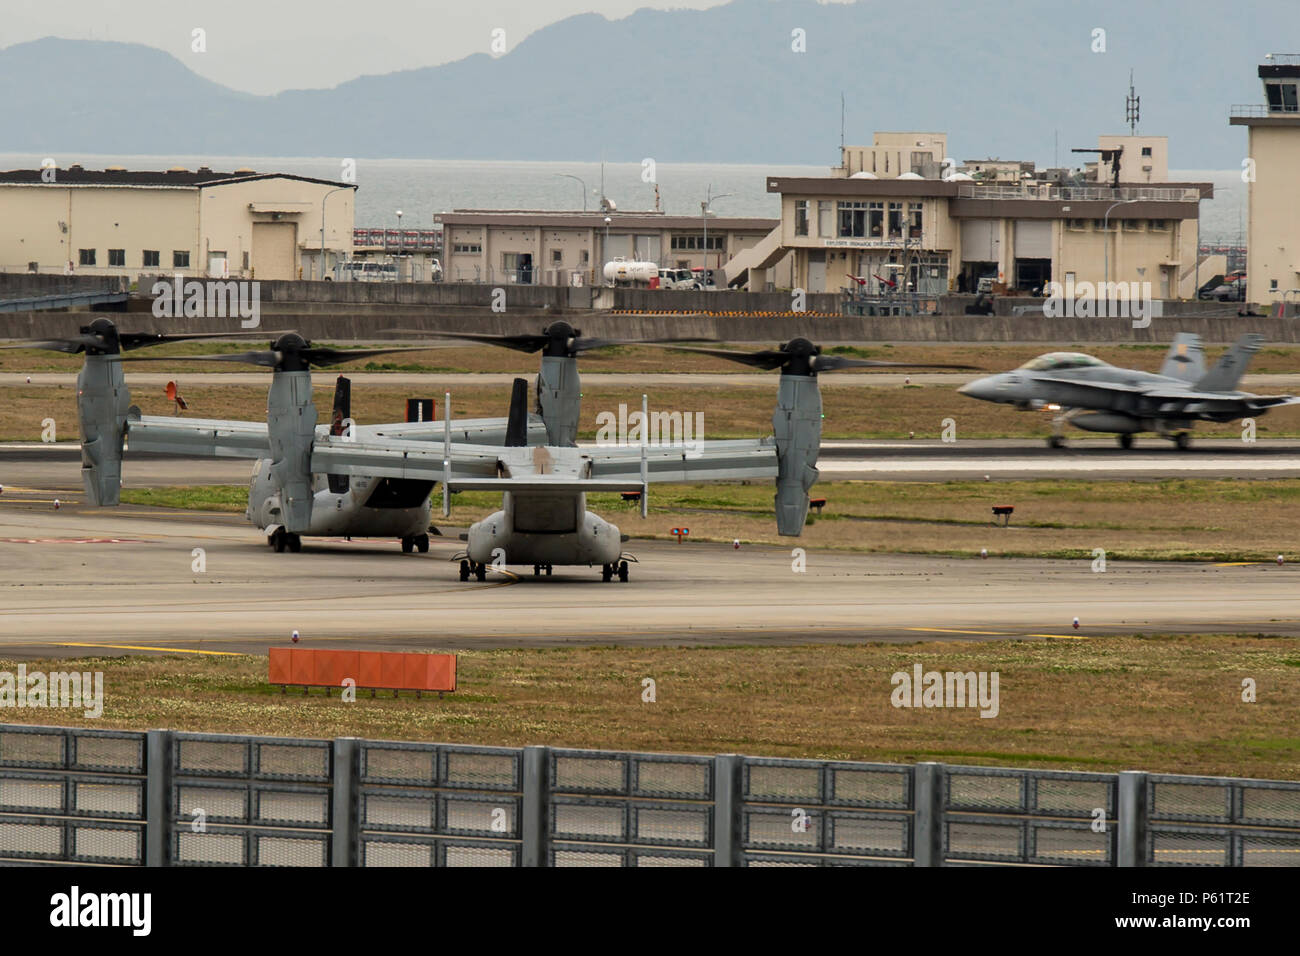 Two MV-22B Ospreys from Marine Medium Tiltrotor Squadron (VMM) 265 (Reinforced)  attached to the 31st Marine Expeditionary Unit wait to take off as an F/A-18 Hornet lands at Marine Corps Air Station Iwakuni, Japan, in support of the Government of Japan's relief efforts following the devastating earthquake near Kumamoto April 18, 2016. The long-standing relationship between Japan and the U.S. allows U.S. military forces in Japan to provide rapid, integrated support to the Japan Self-Defense Forces and civil relief efforts. (U.S. Marine Corps photo by Lance Cpl. Aaron Henson/Released) Stock Photo